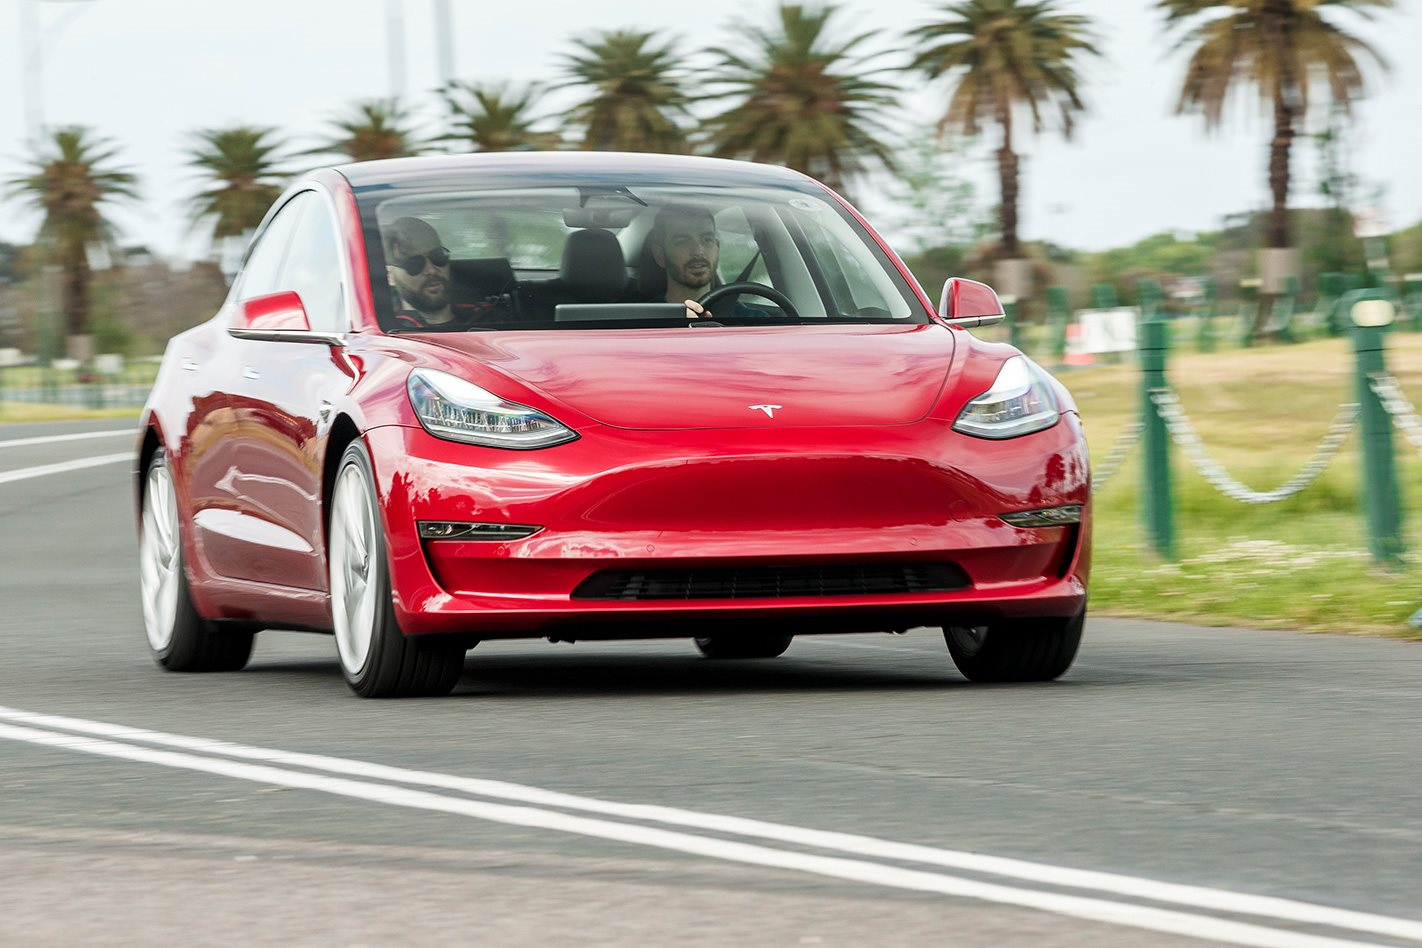 Tesla Model 3 SR+ Now Even More Compelling in Australia with New Prices & No Luxury Tax